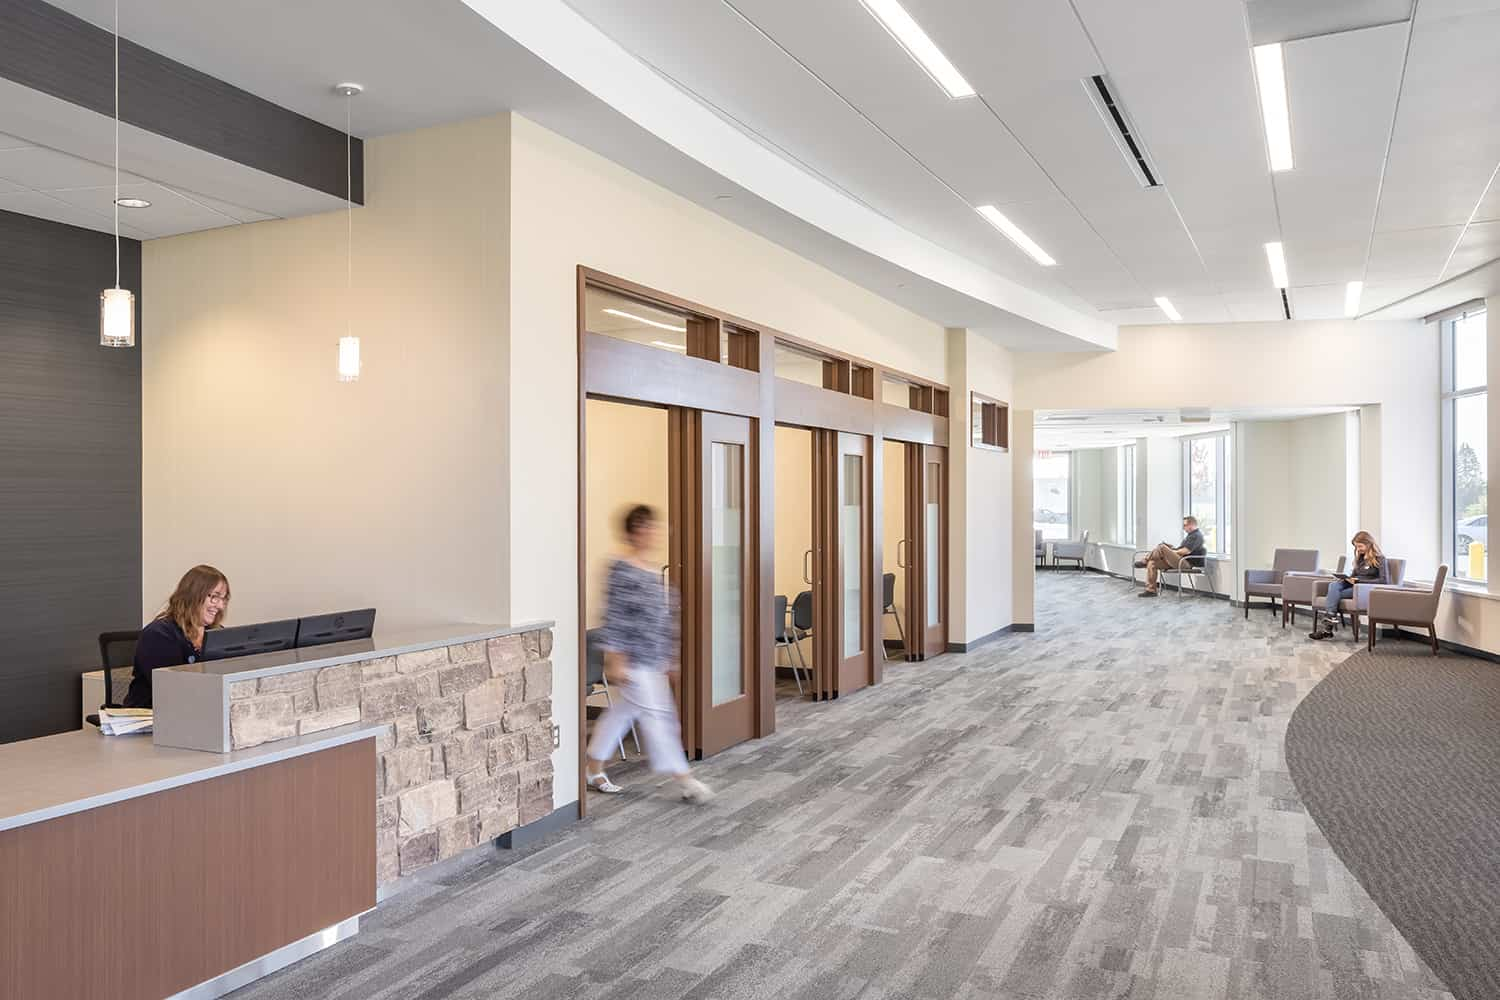 The new welcome desk offers a spacious waiting area and private check-in rooms.